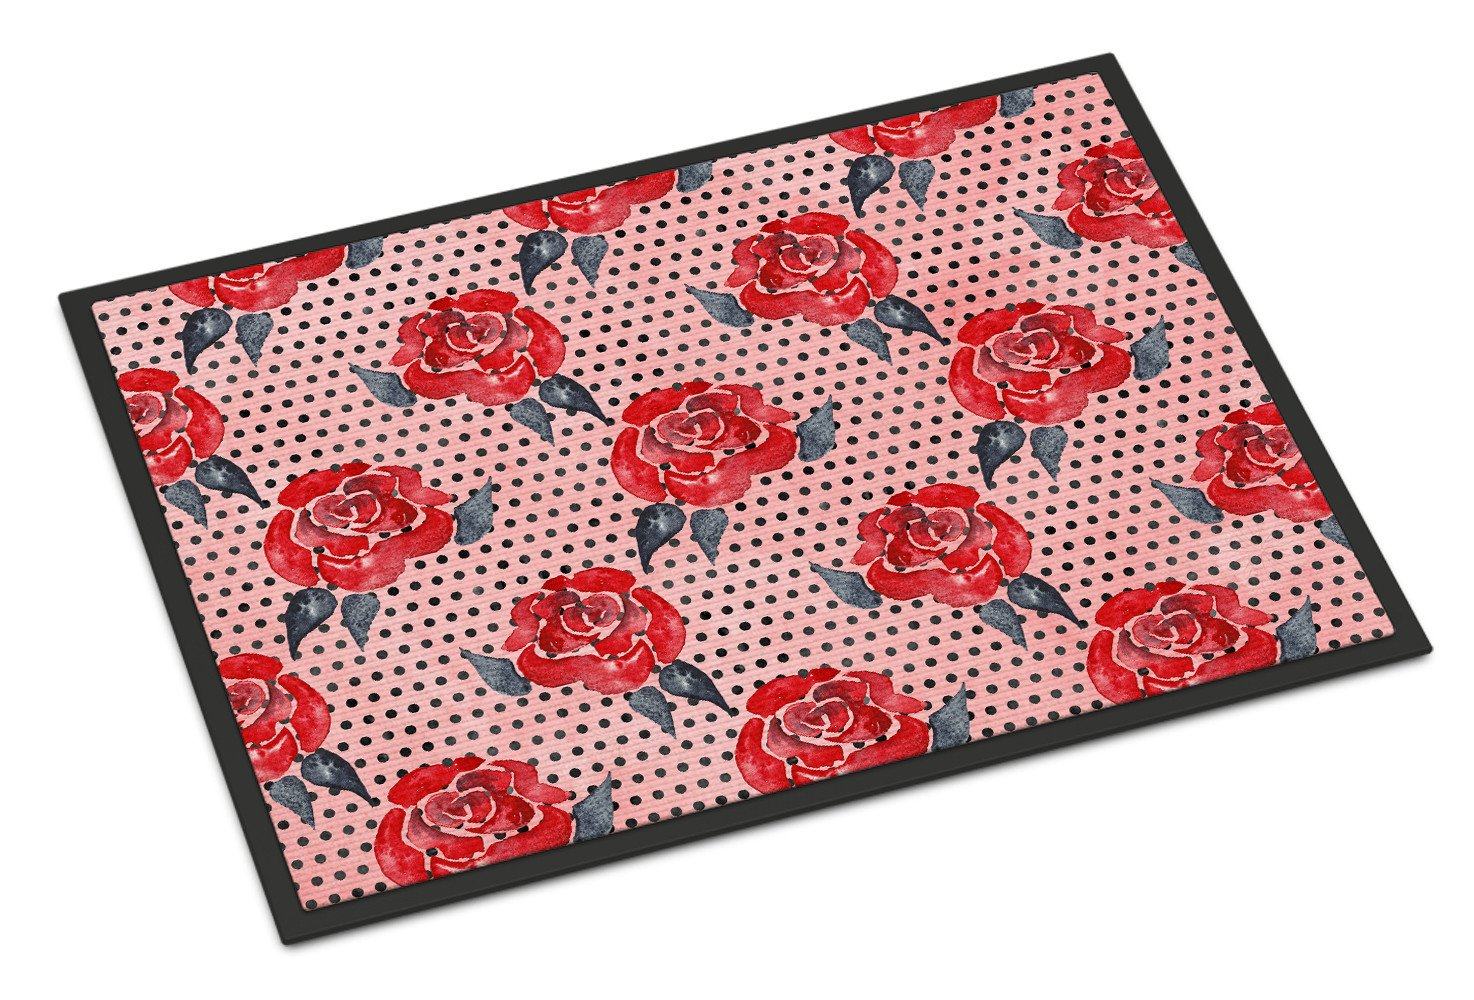 Watercolor Red Roses and Polkadots Indoor or Outdoor Mat 24x36 BB7513JMAT by Caroline's Treasures